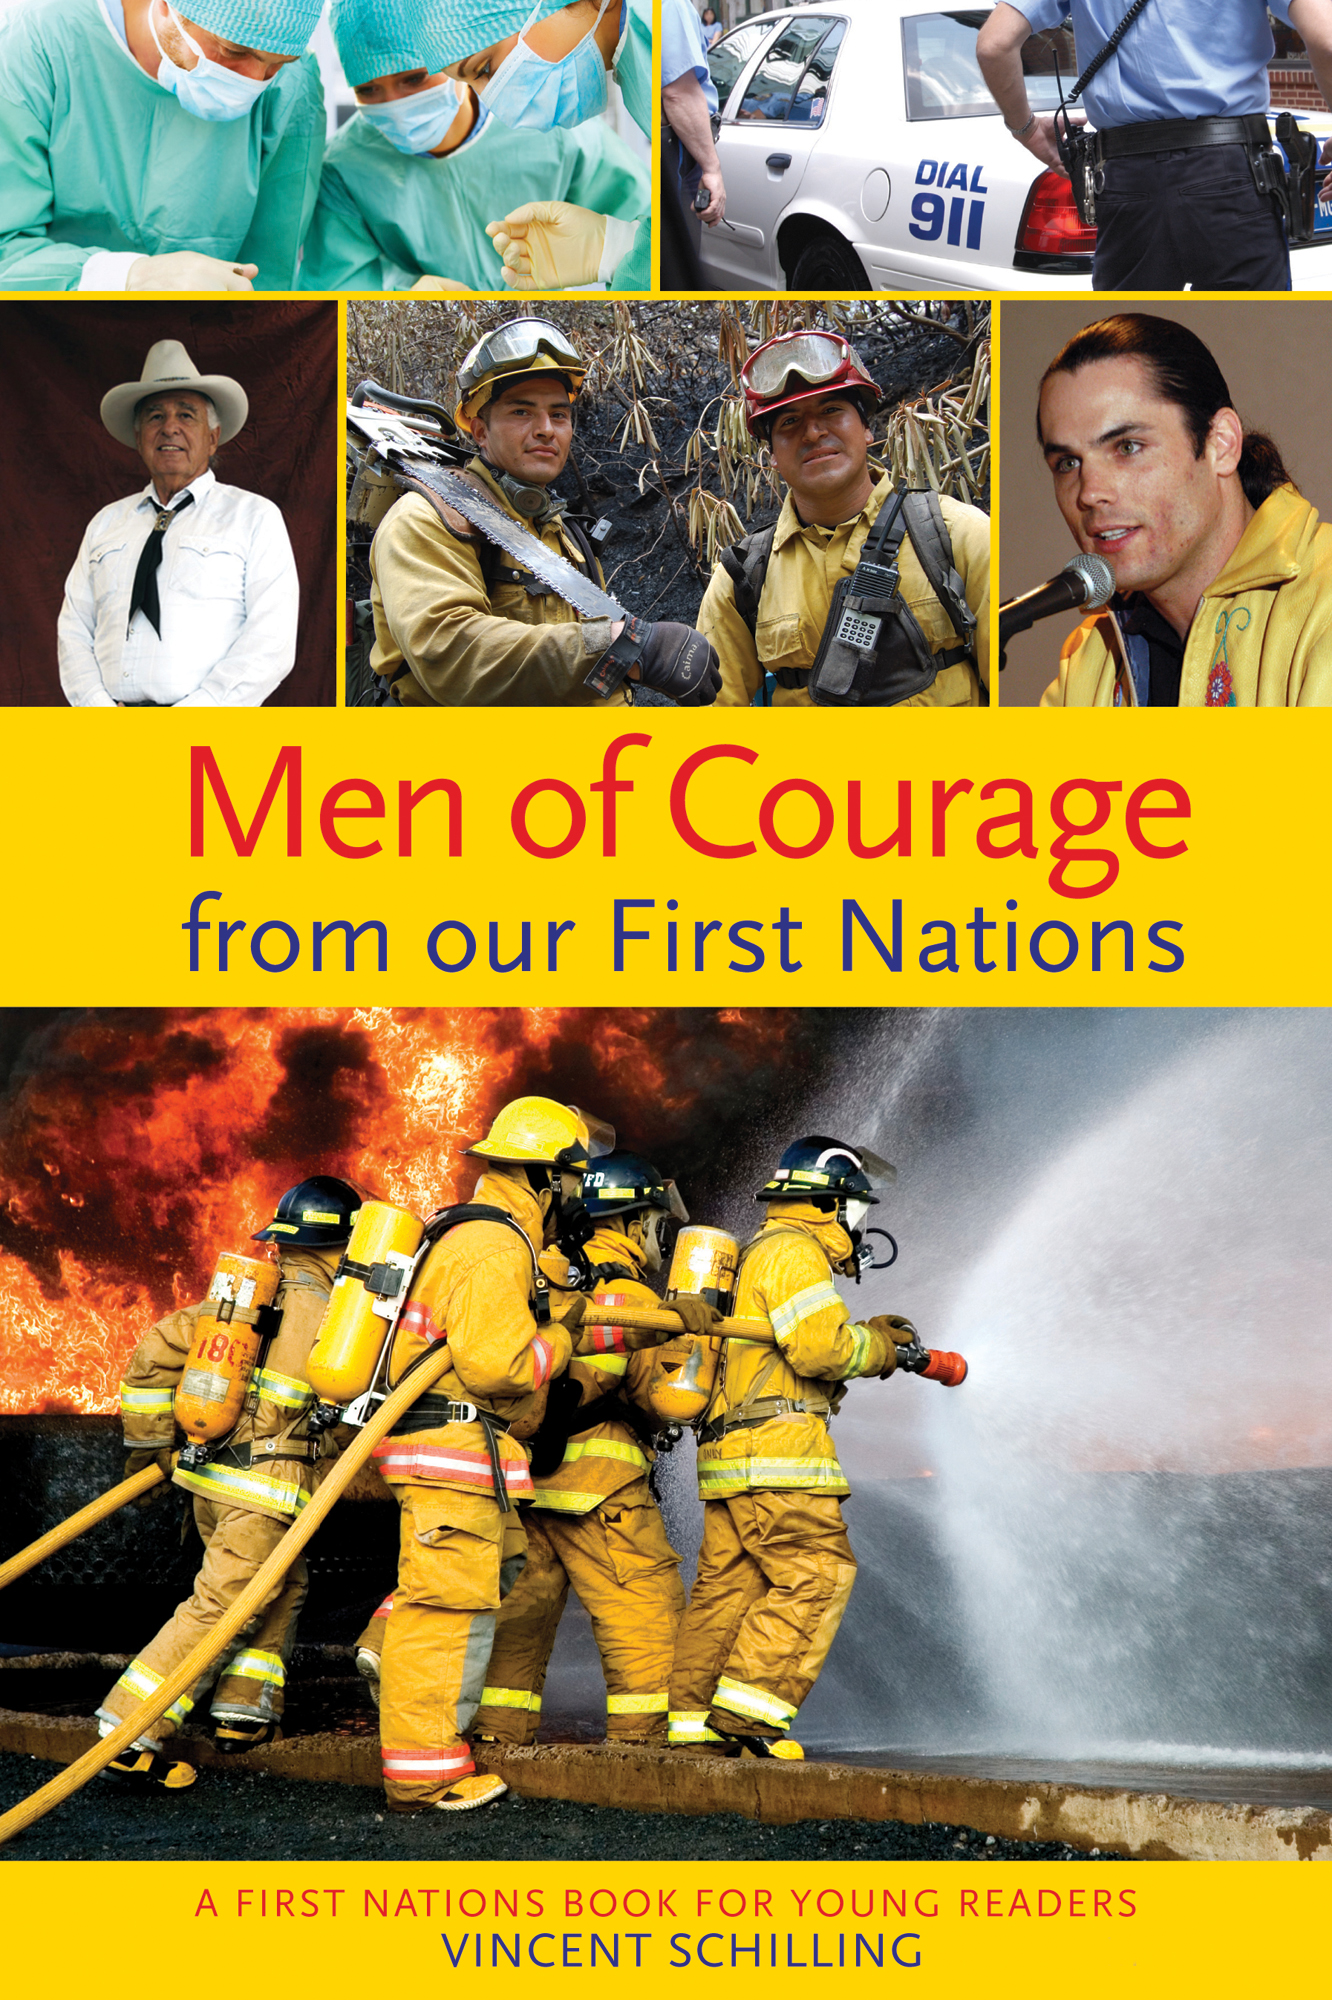 MenofCourageFirstNations